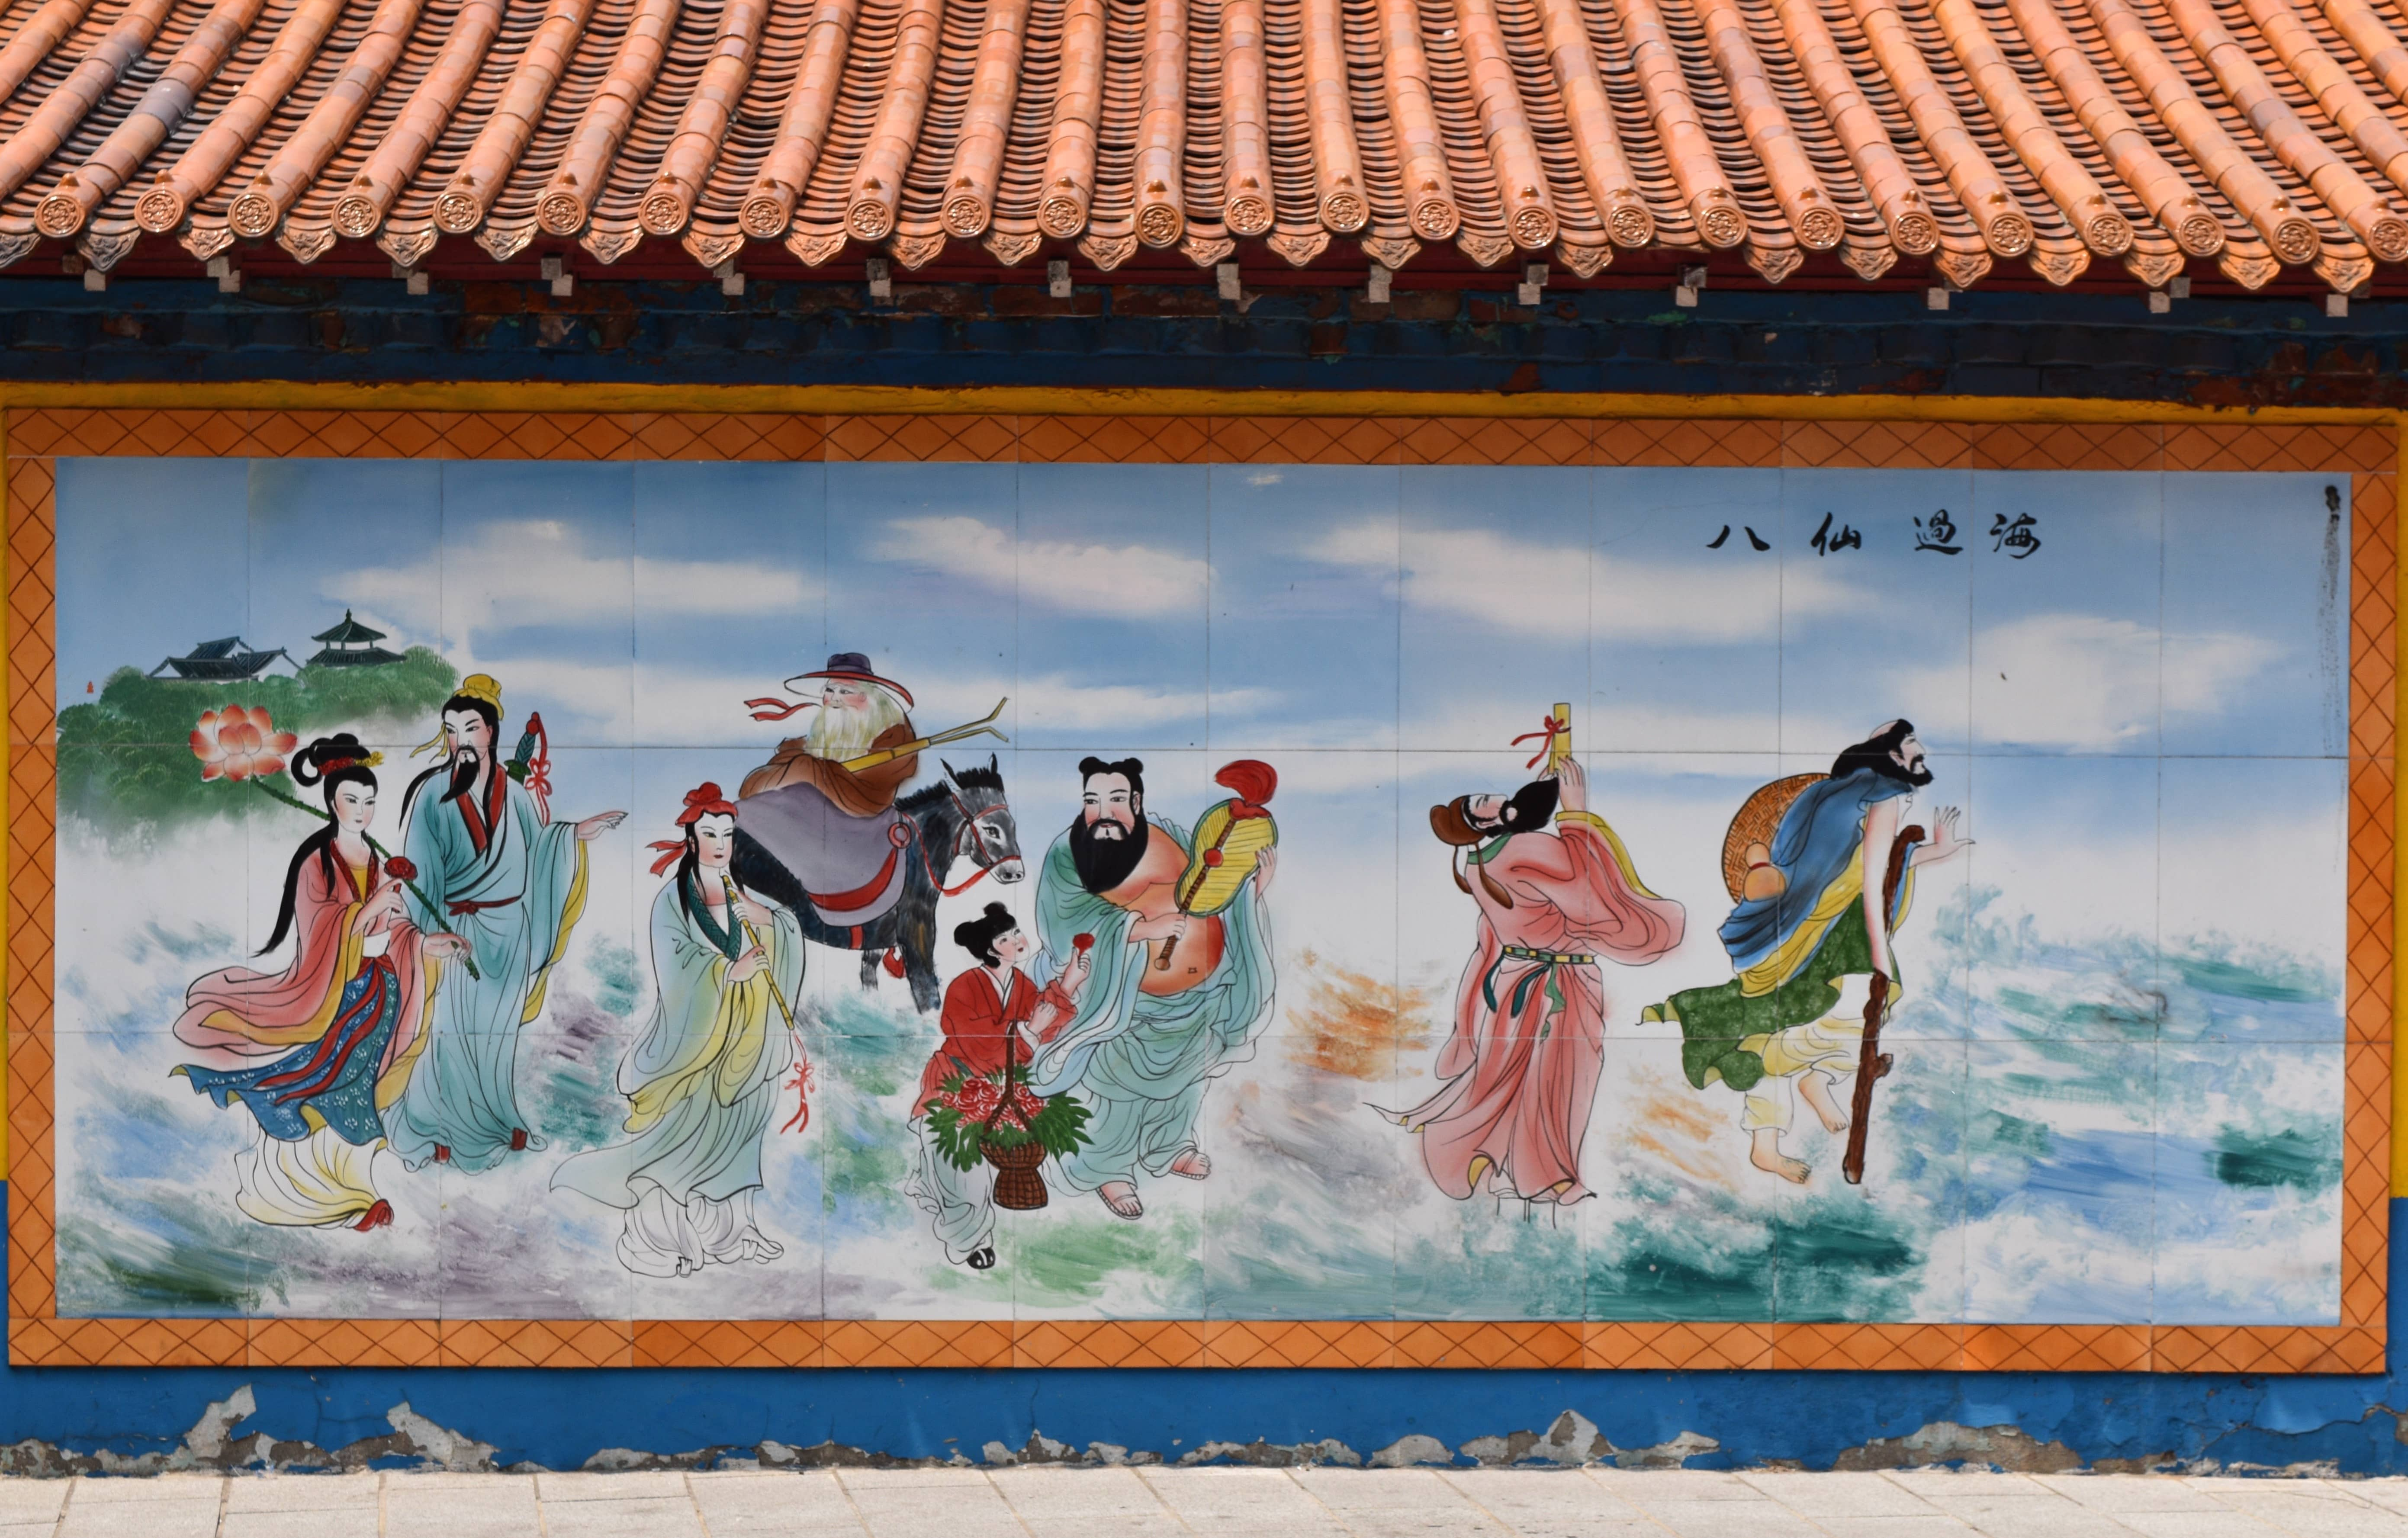 Uiseondang Mural in incheon china town